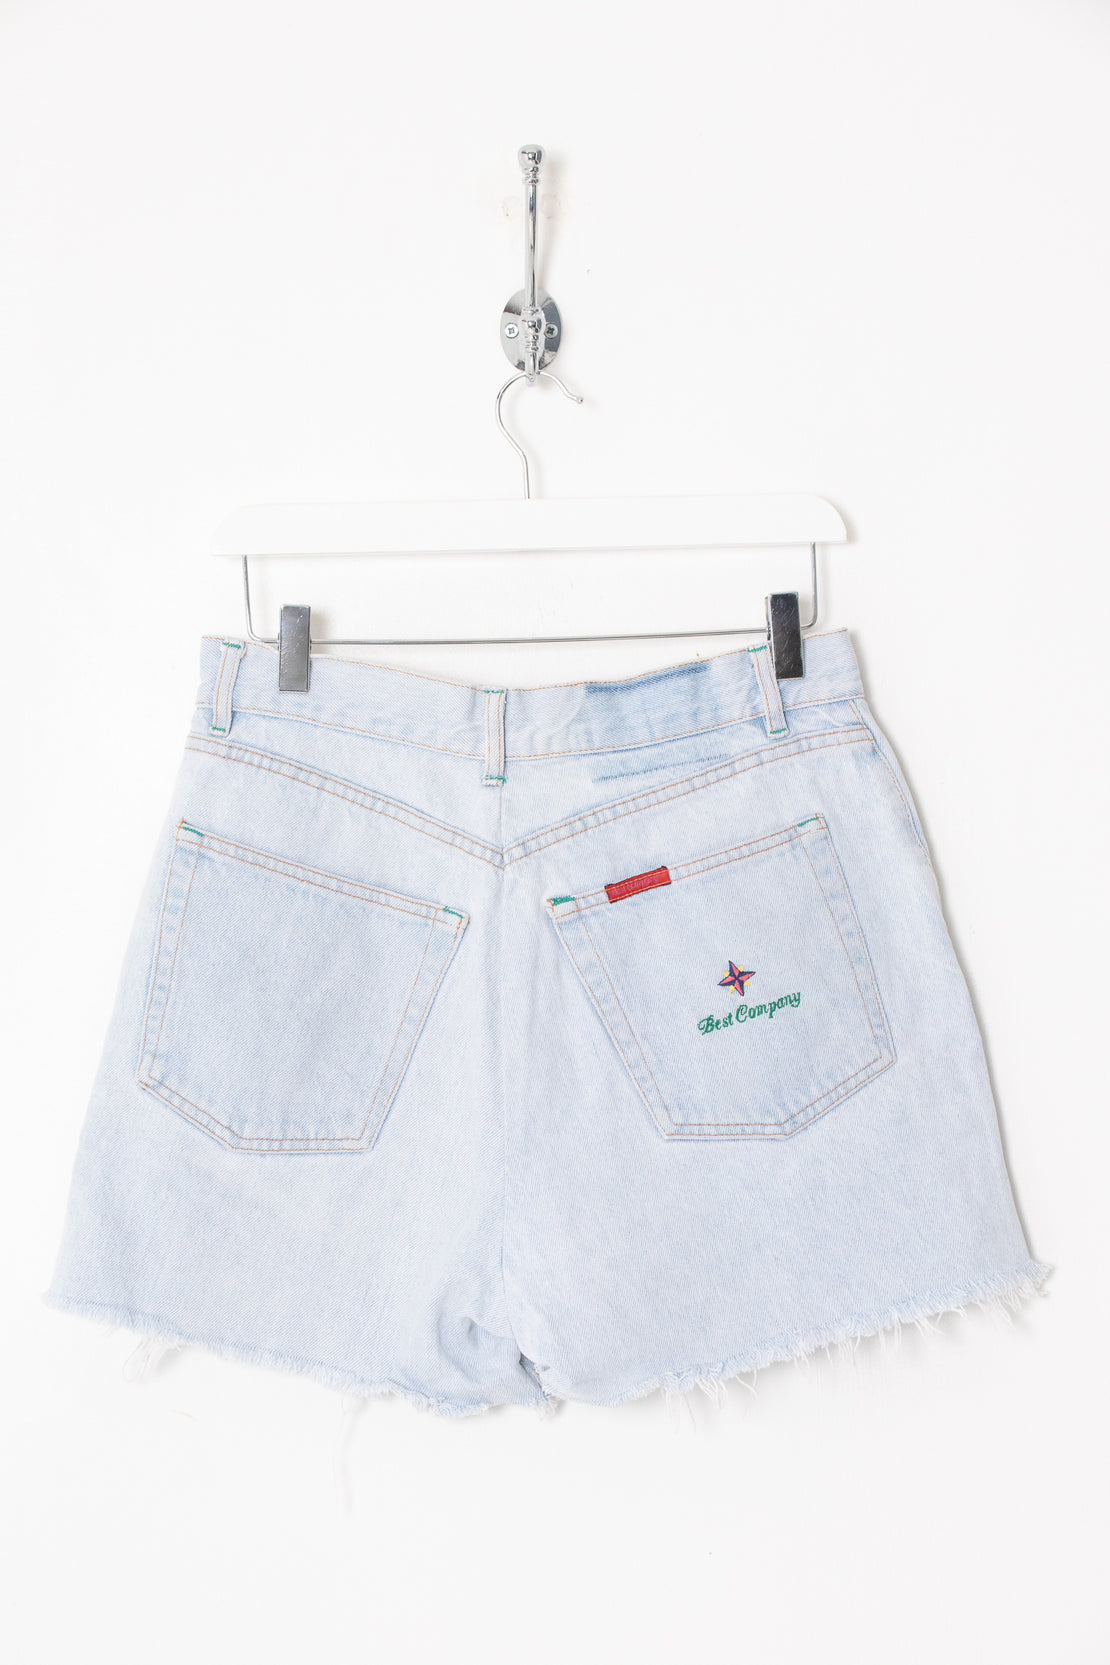 Women's Best Company Denim Shorts (26)